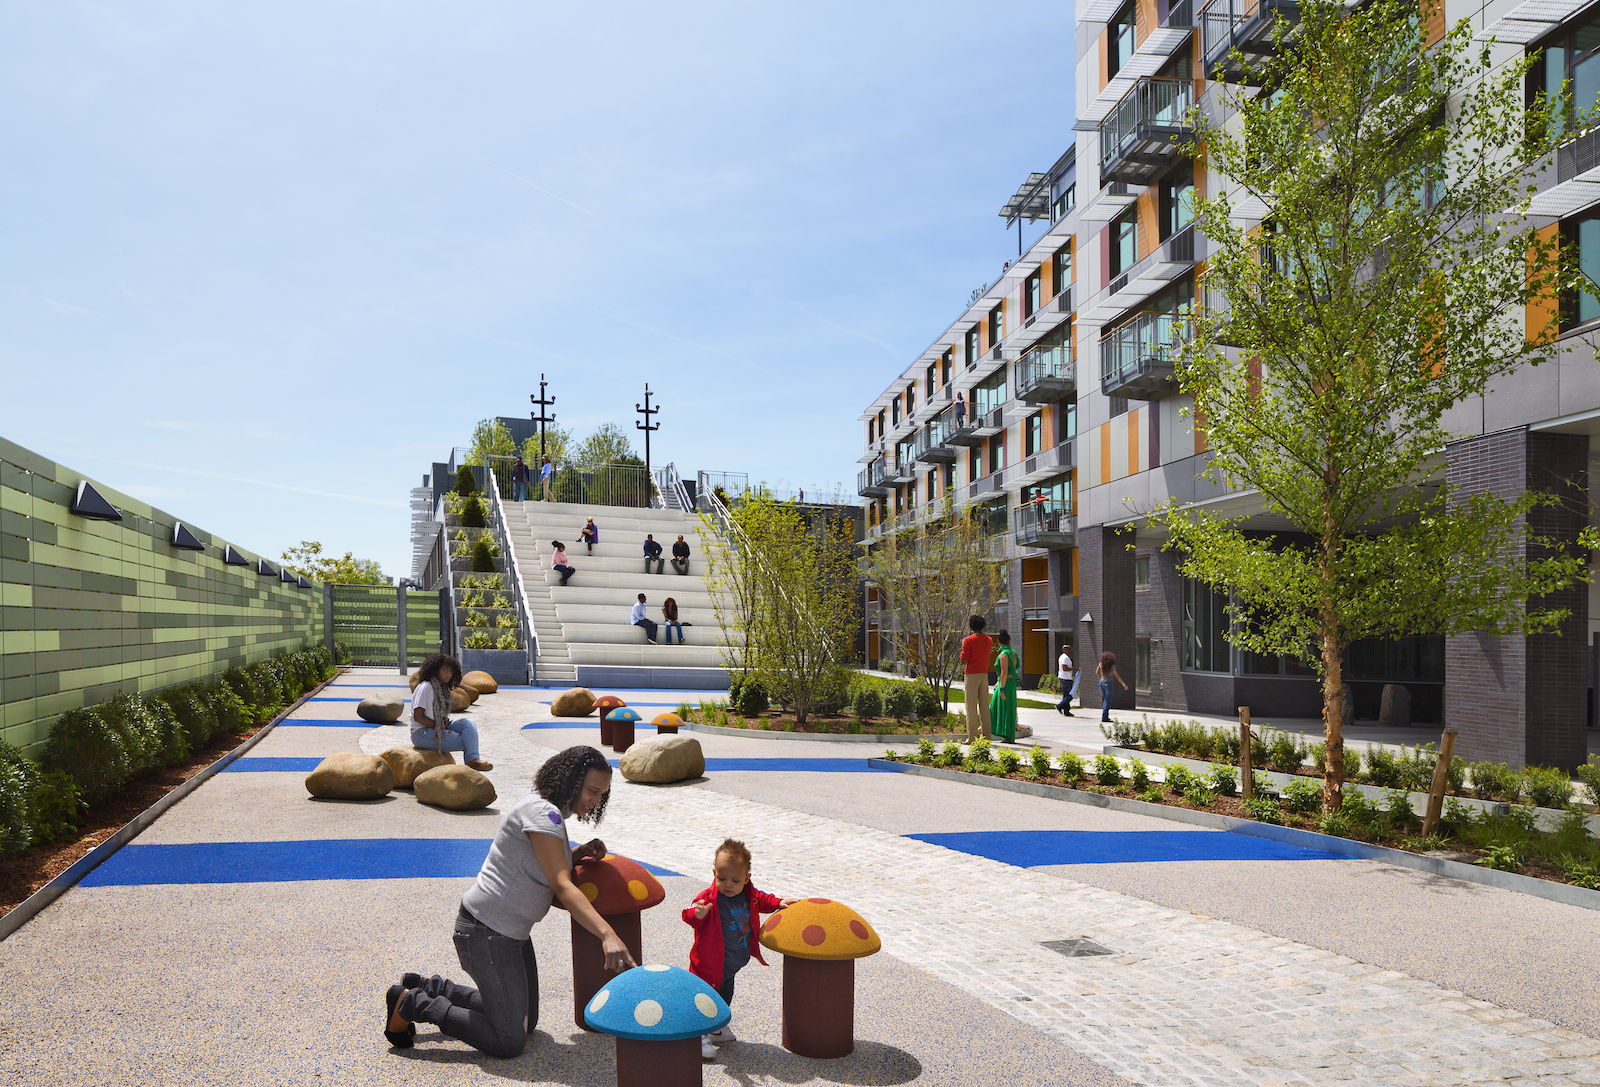 An affordable housing complex in the Bronx revisited - uncube